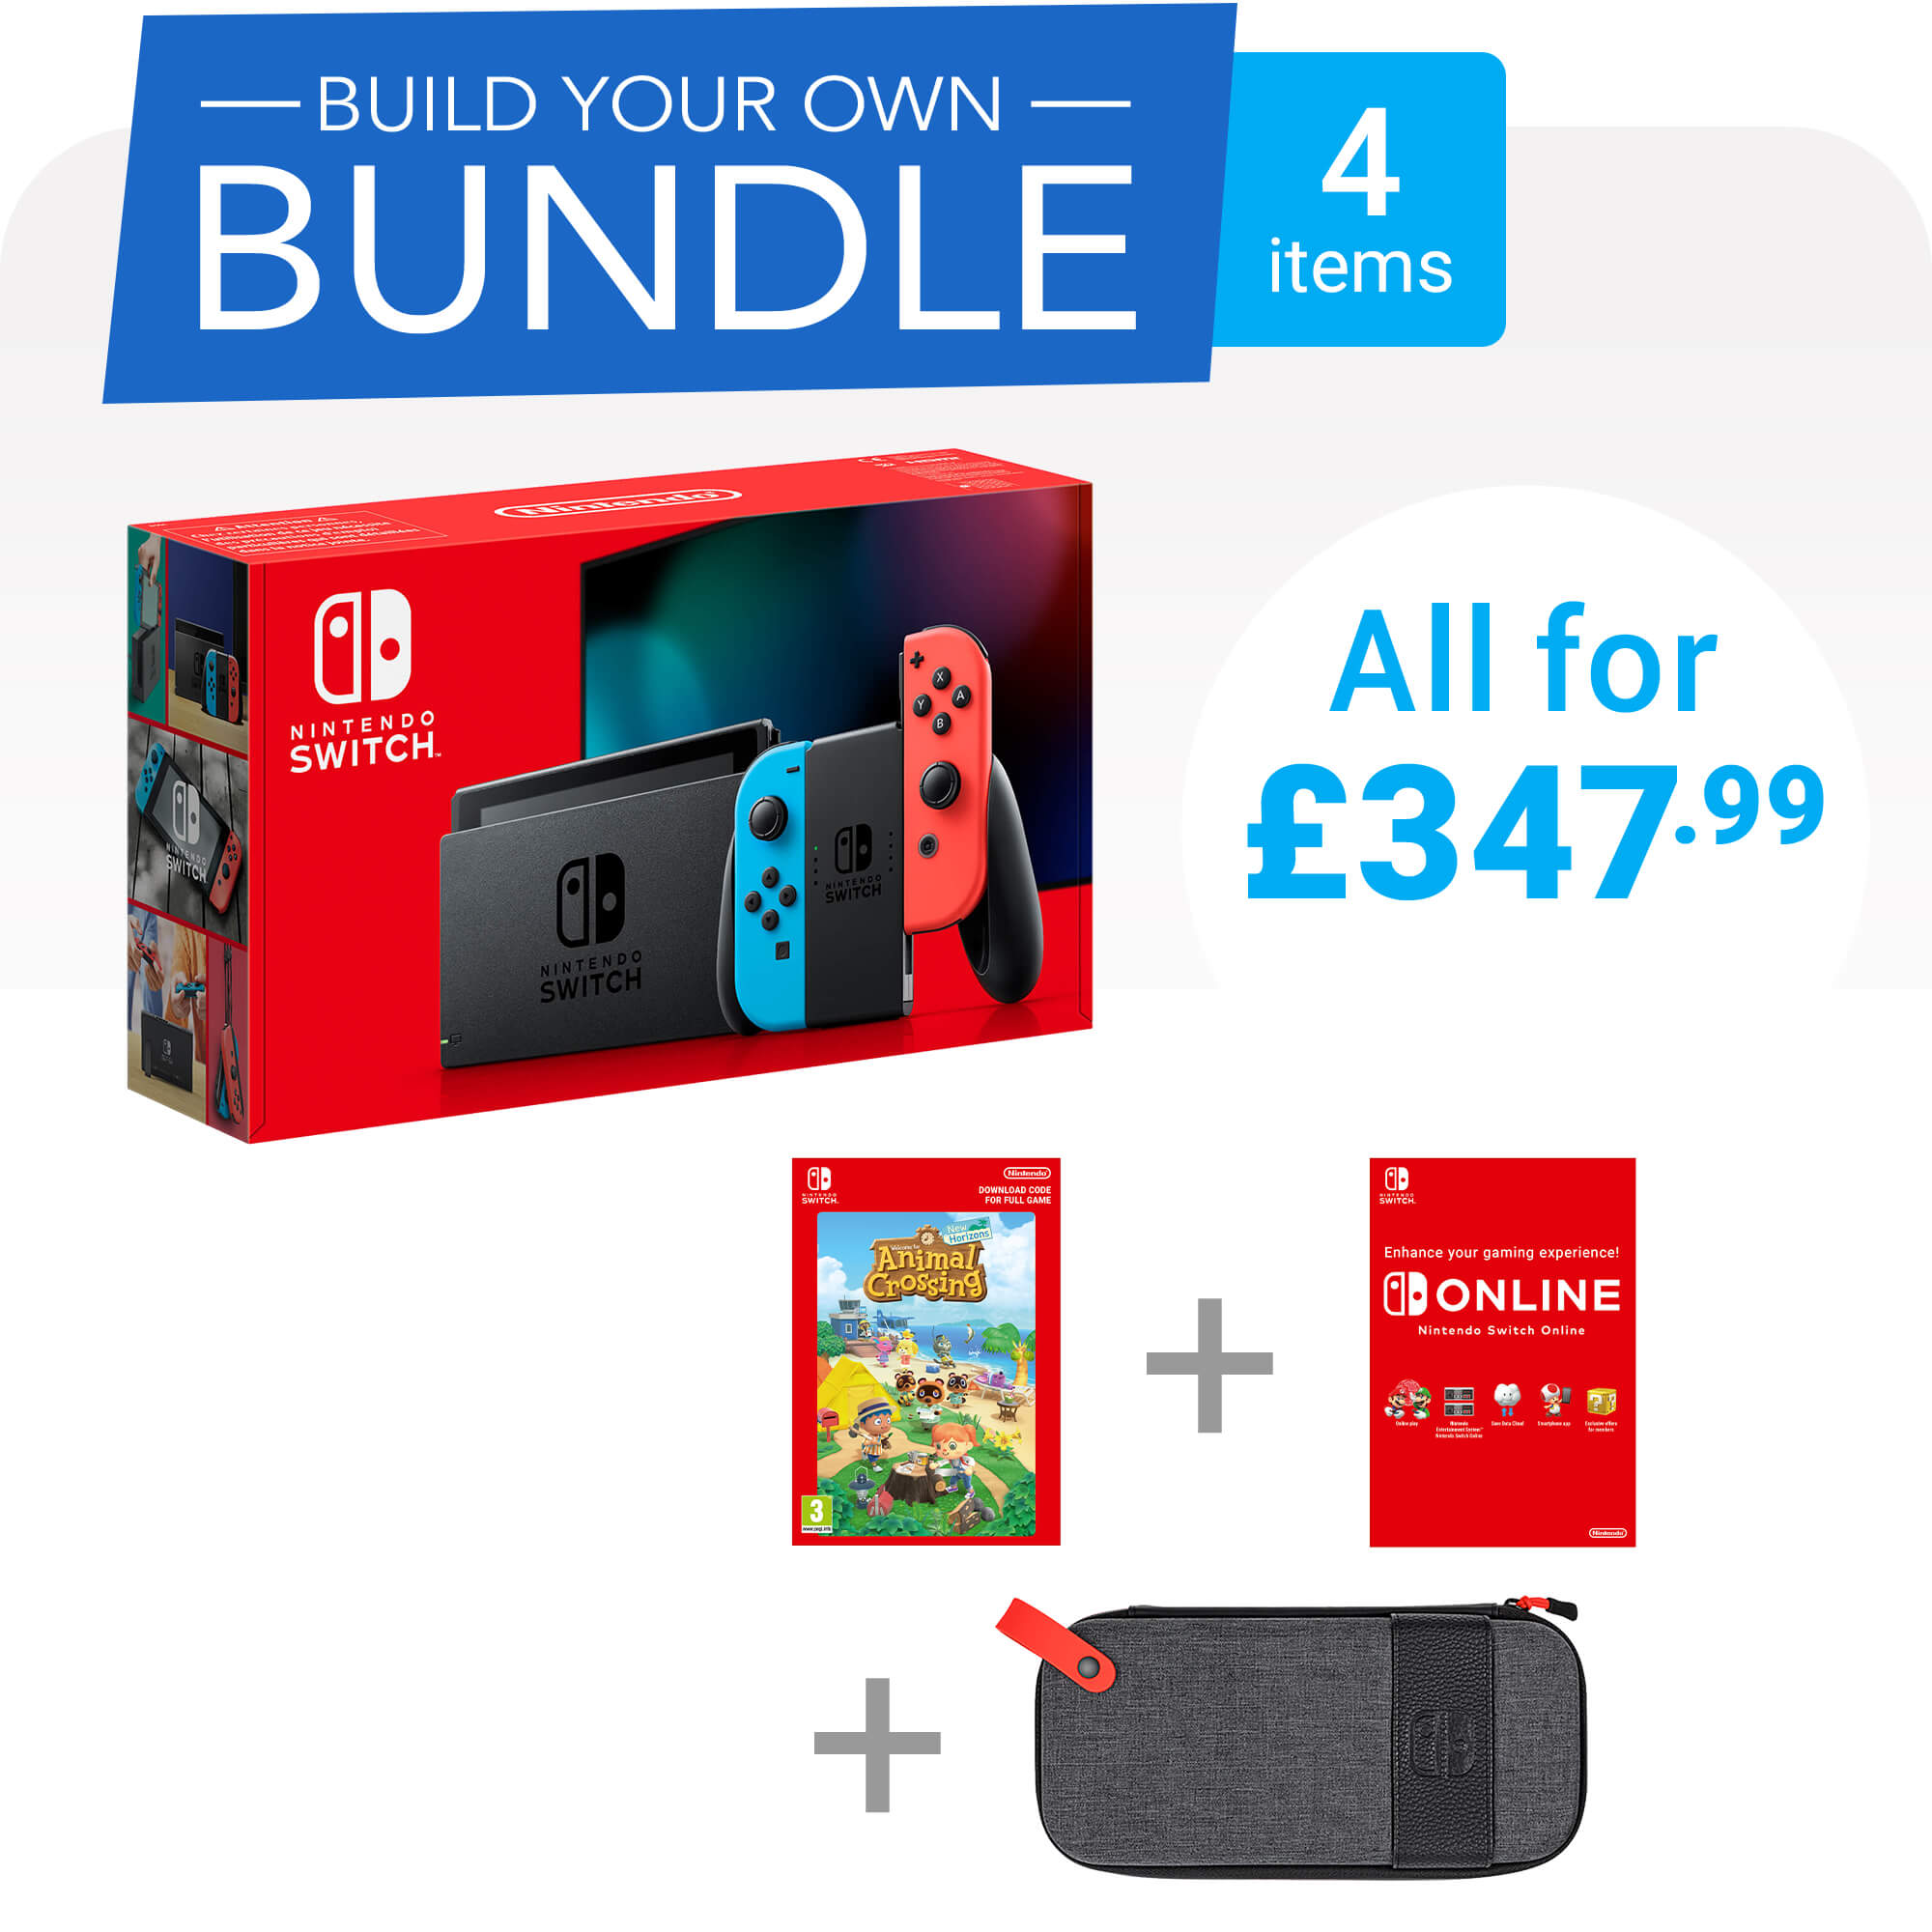 Build your own Nintendo Switch bundle for only £347.99